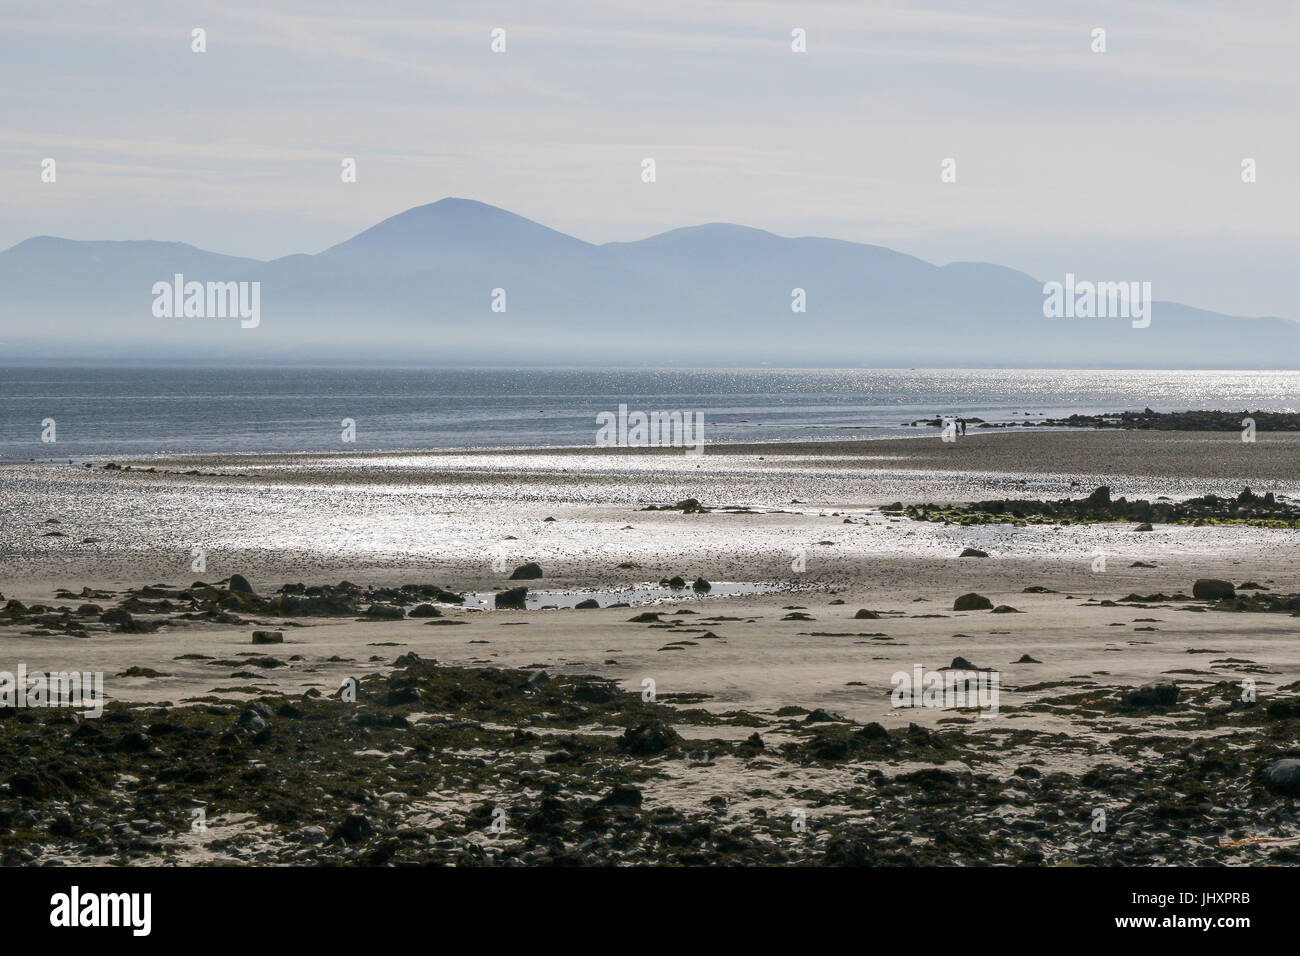 A heat haze hangs over newcastle at the foot of the Mourne Mountians on a hot summer's day. The view is across - Stock Image